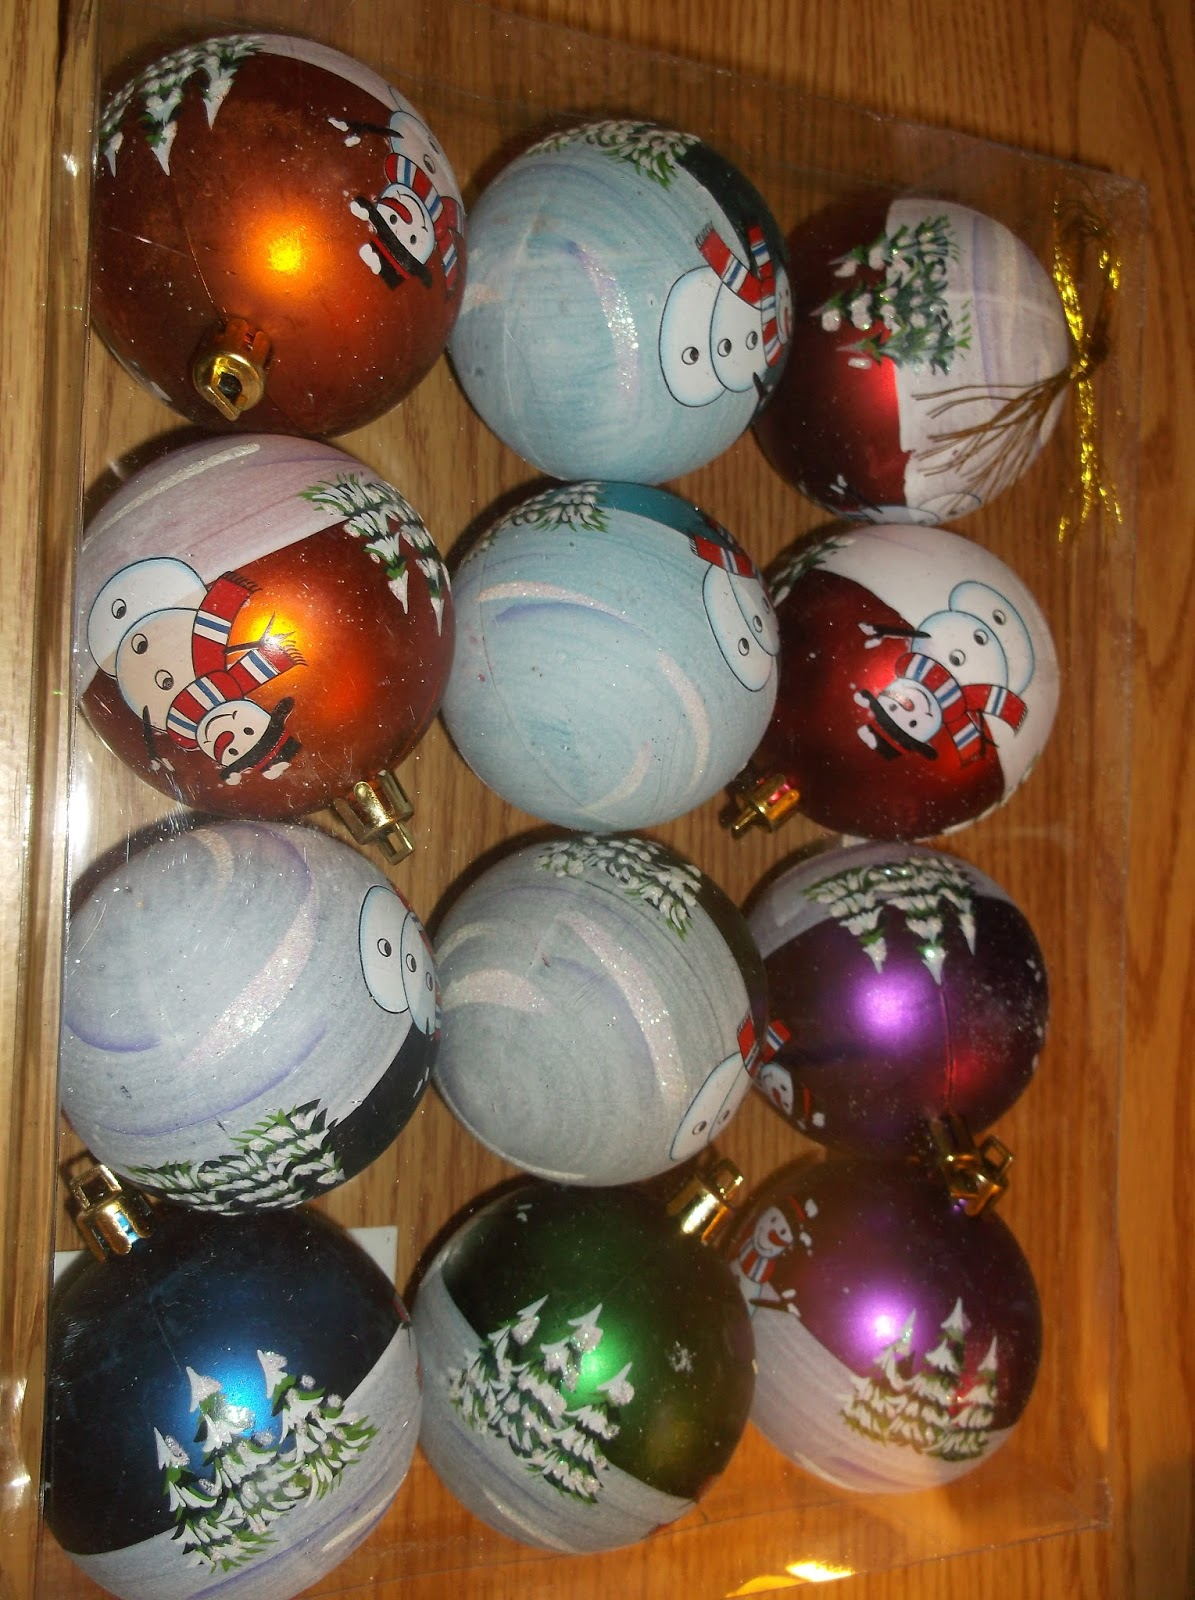 f7fa4c4b41b 12 Pack Assorted Color Ball Ornaments with Snowman Design- These  traditional 2 inch assorted color ball ornaments are a classic for any home  or business.